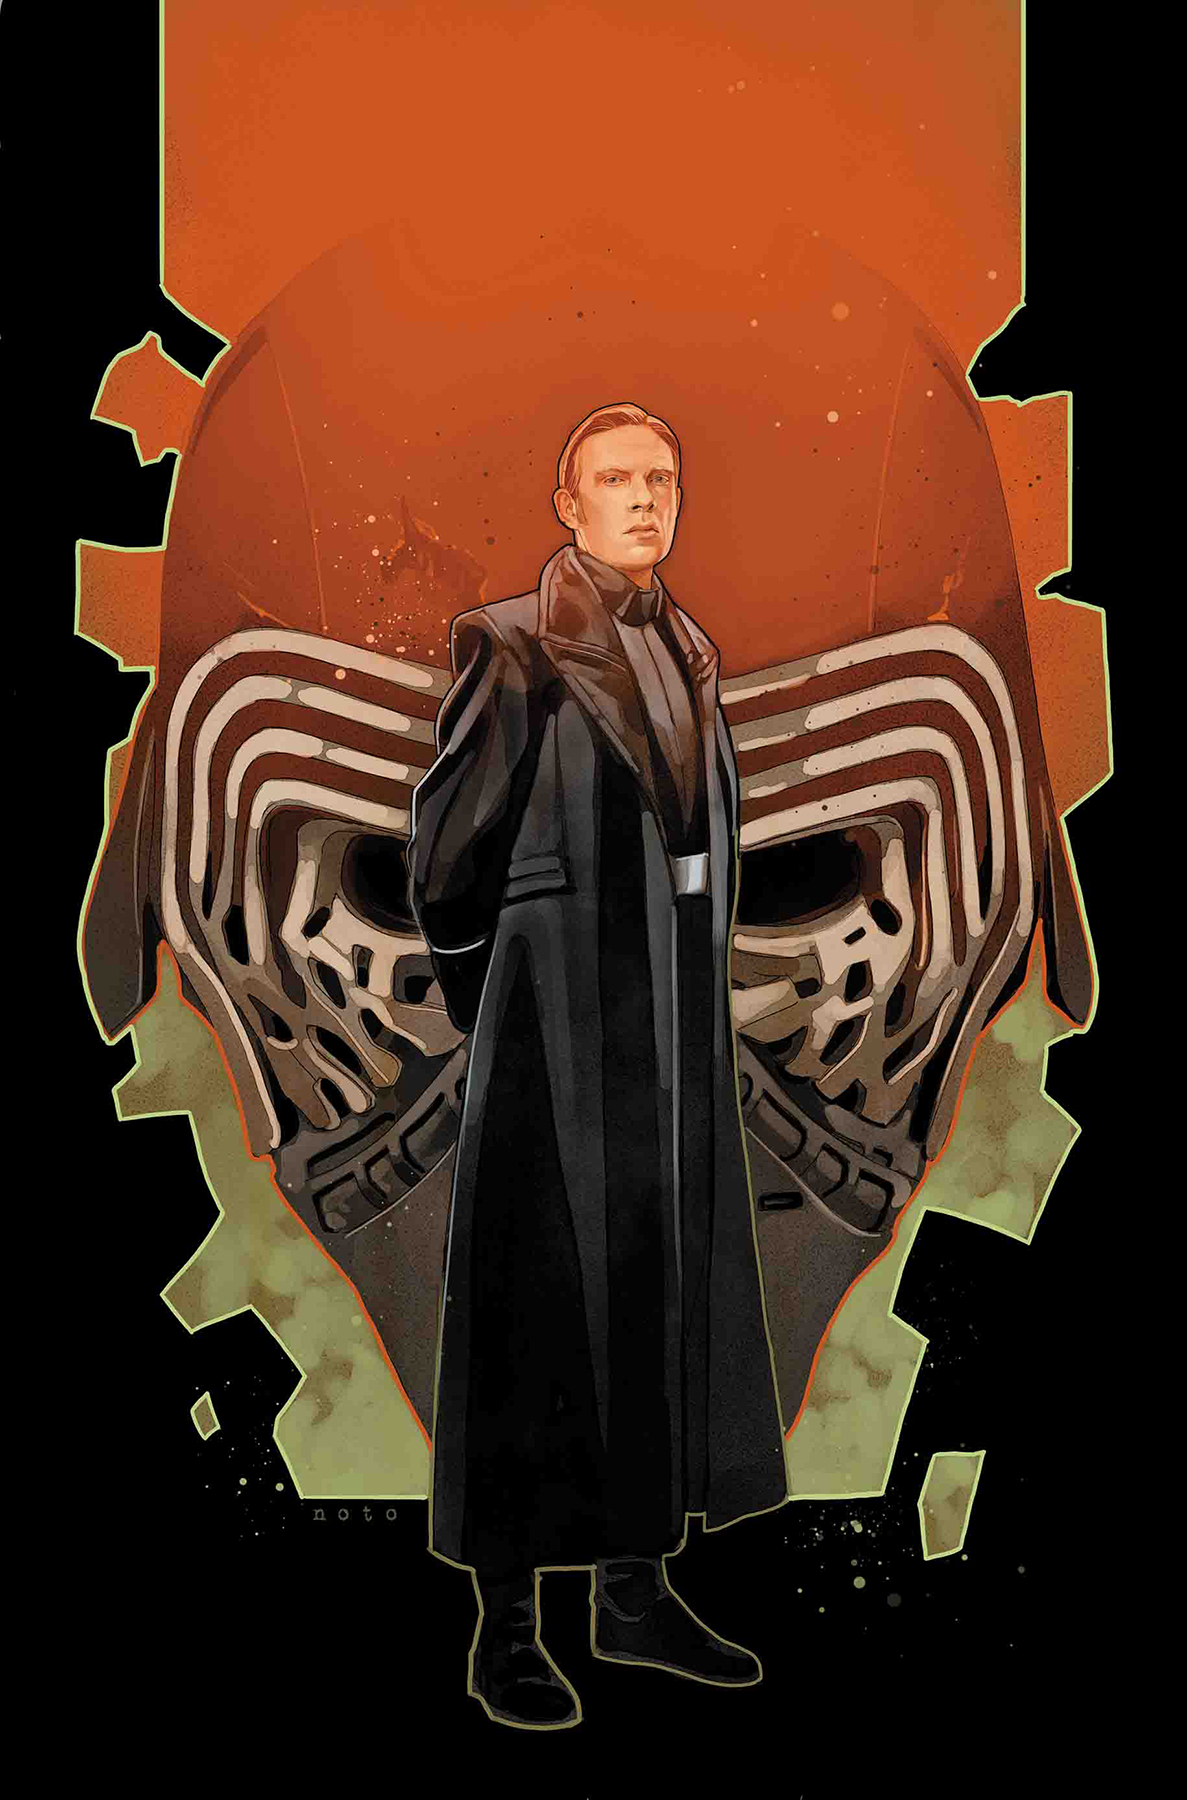 Age of Resistance - General Hux #1